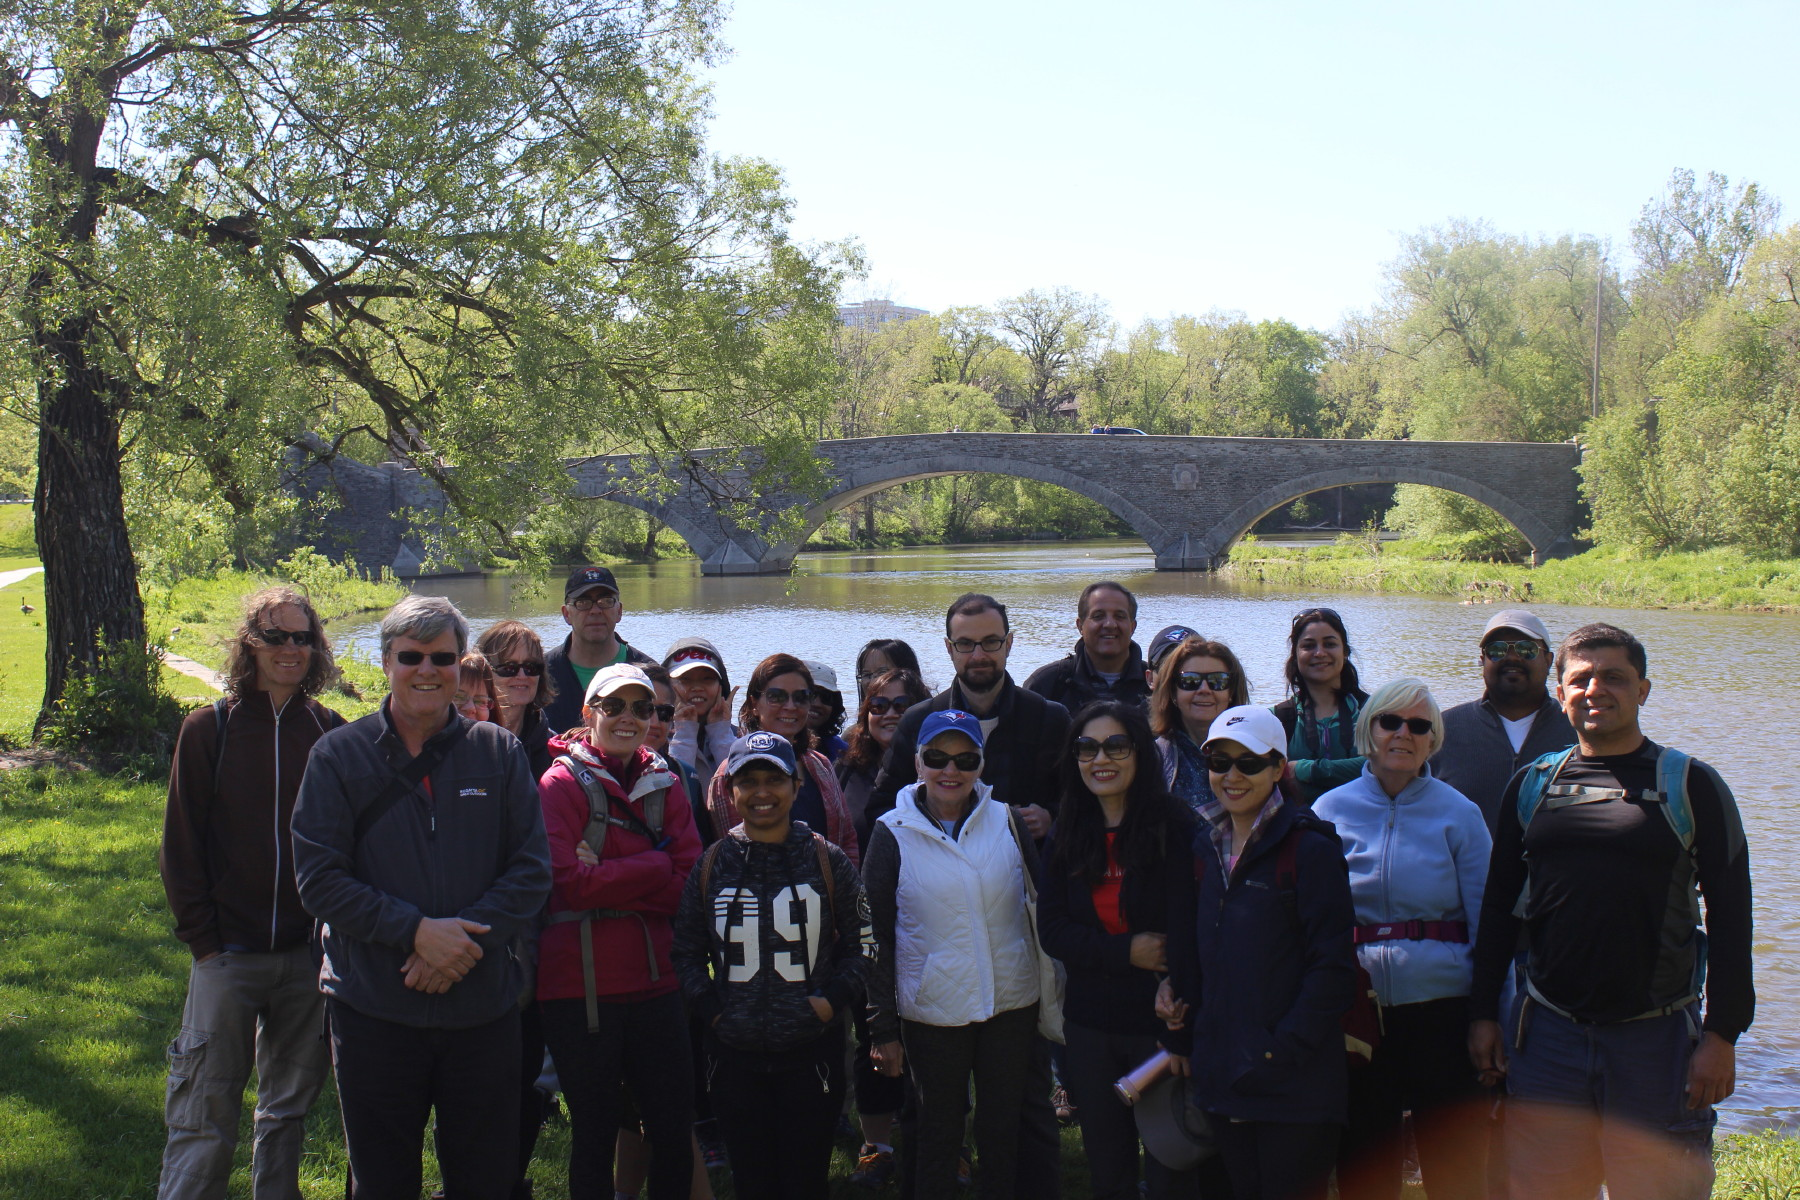 TorontoHiking #HumberRiver hike photos: Sat, May 20